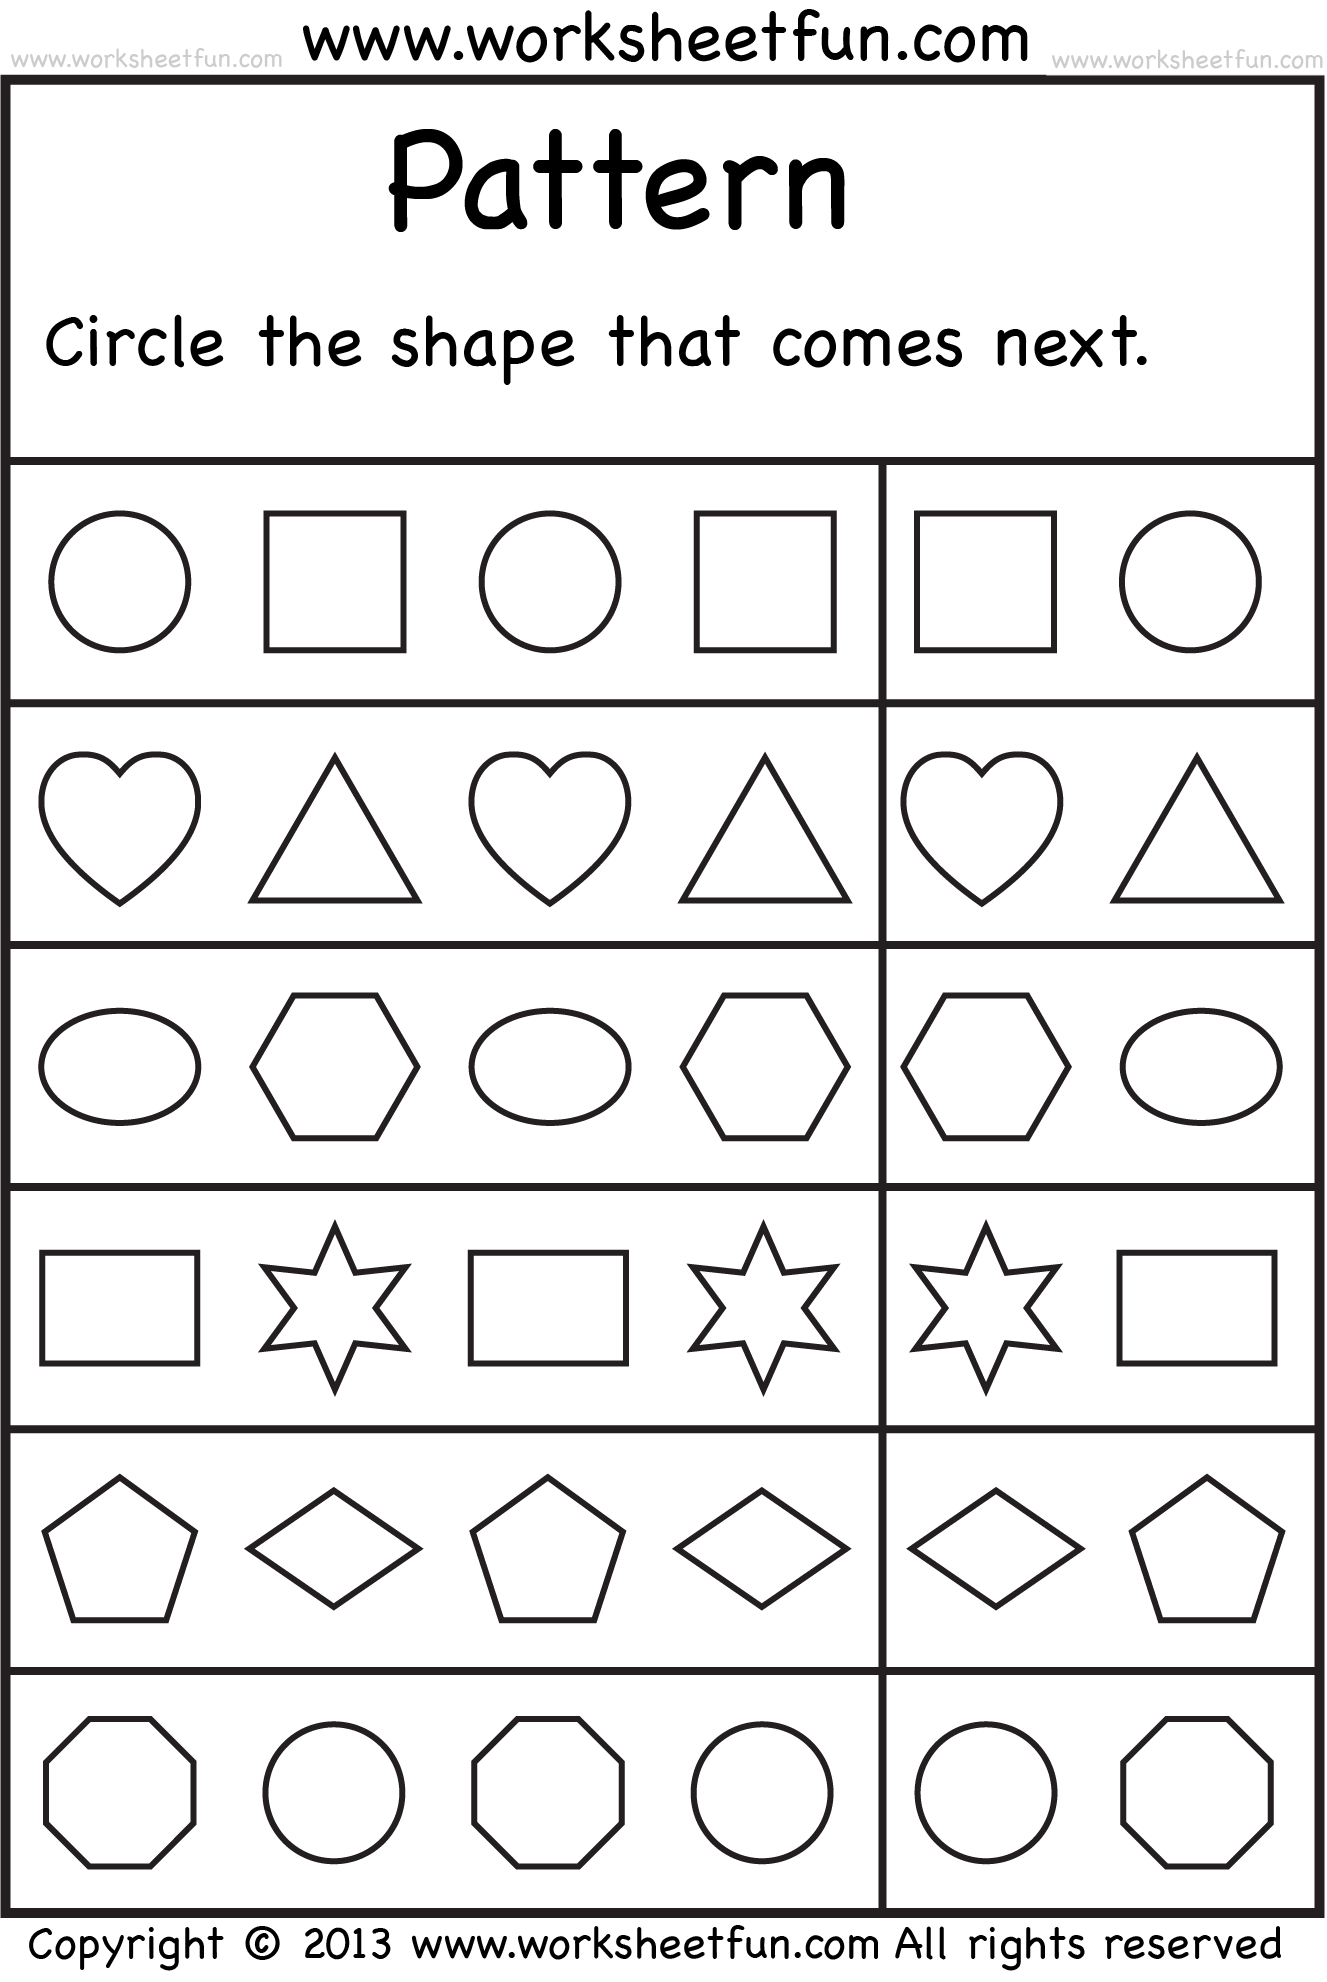 Weirdmailus  Inspiring  Images About School Worksheets On Pinterest  Number Words  With Hot  Images About School Worksheets On Pinterest  Number Words Alphabet Worksheets And Free Printable Kindergarten Worksheets With Archaic School Maths Worksheets Also  Ticks Worksheets In Addition Rewrite The Sentence Correctly Worksheet And Homeschooling Printable Worksheets As Well As Teachers Worksheets And Answers Additionally Adding Subtracting Worksheets From Pinterestcom With Weirdmailus  Hot  Images About School Worksheets On Pinterest  Number Words  With Archaic  Images About School Worksheets On Pinterest  Number Words Alphabet Worksheets And Free Printable Kindergarten Worksheets And Inspiring School Maths Worksheets Also  Ticks Worksheets In Addition Rewrite The Sentence Correctly Worksheet From Pinterestcom